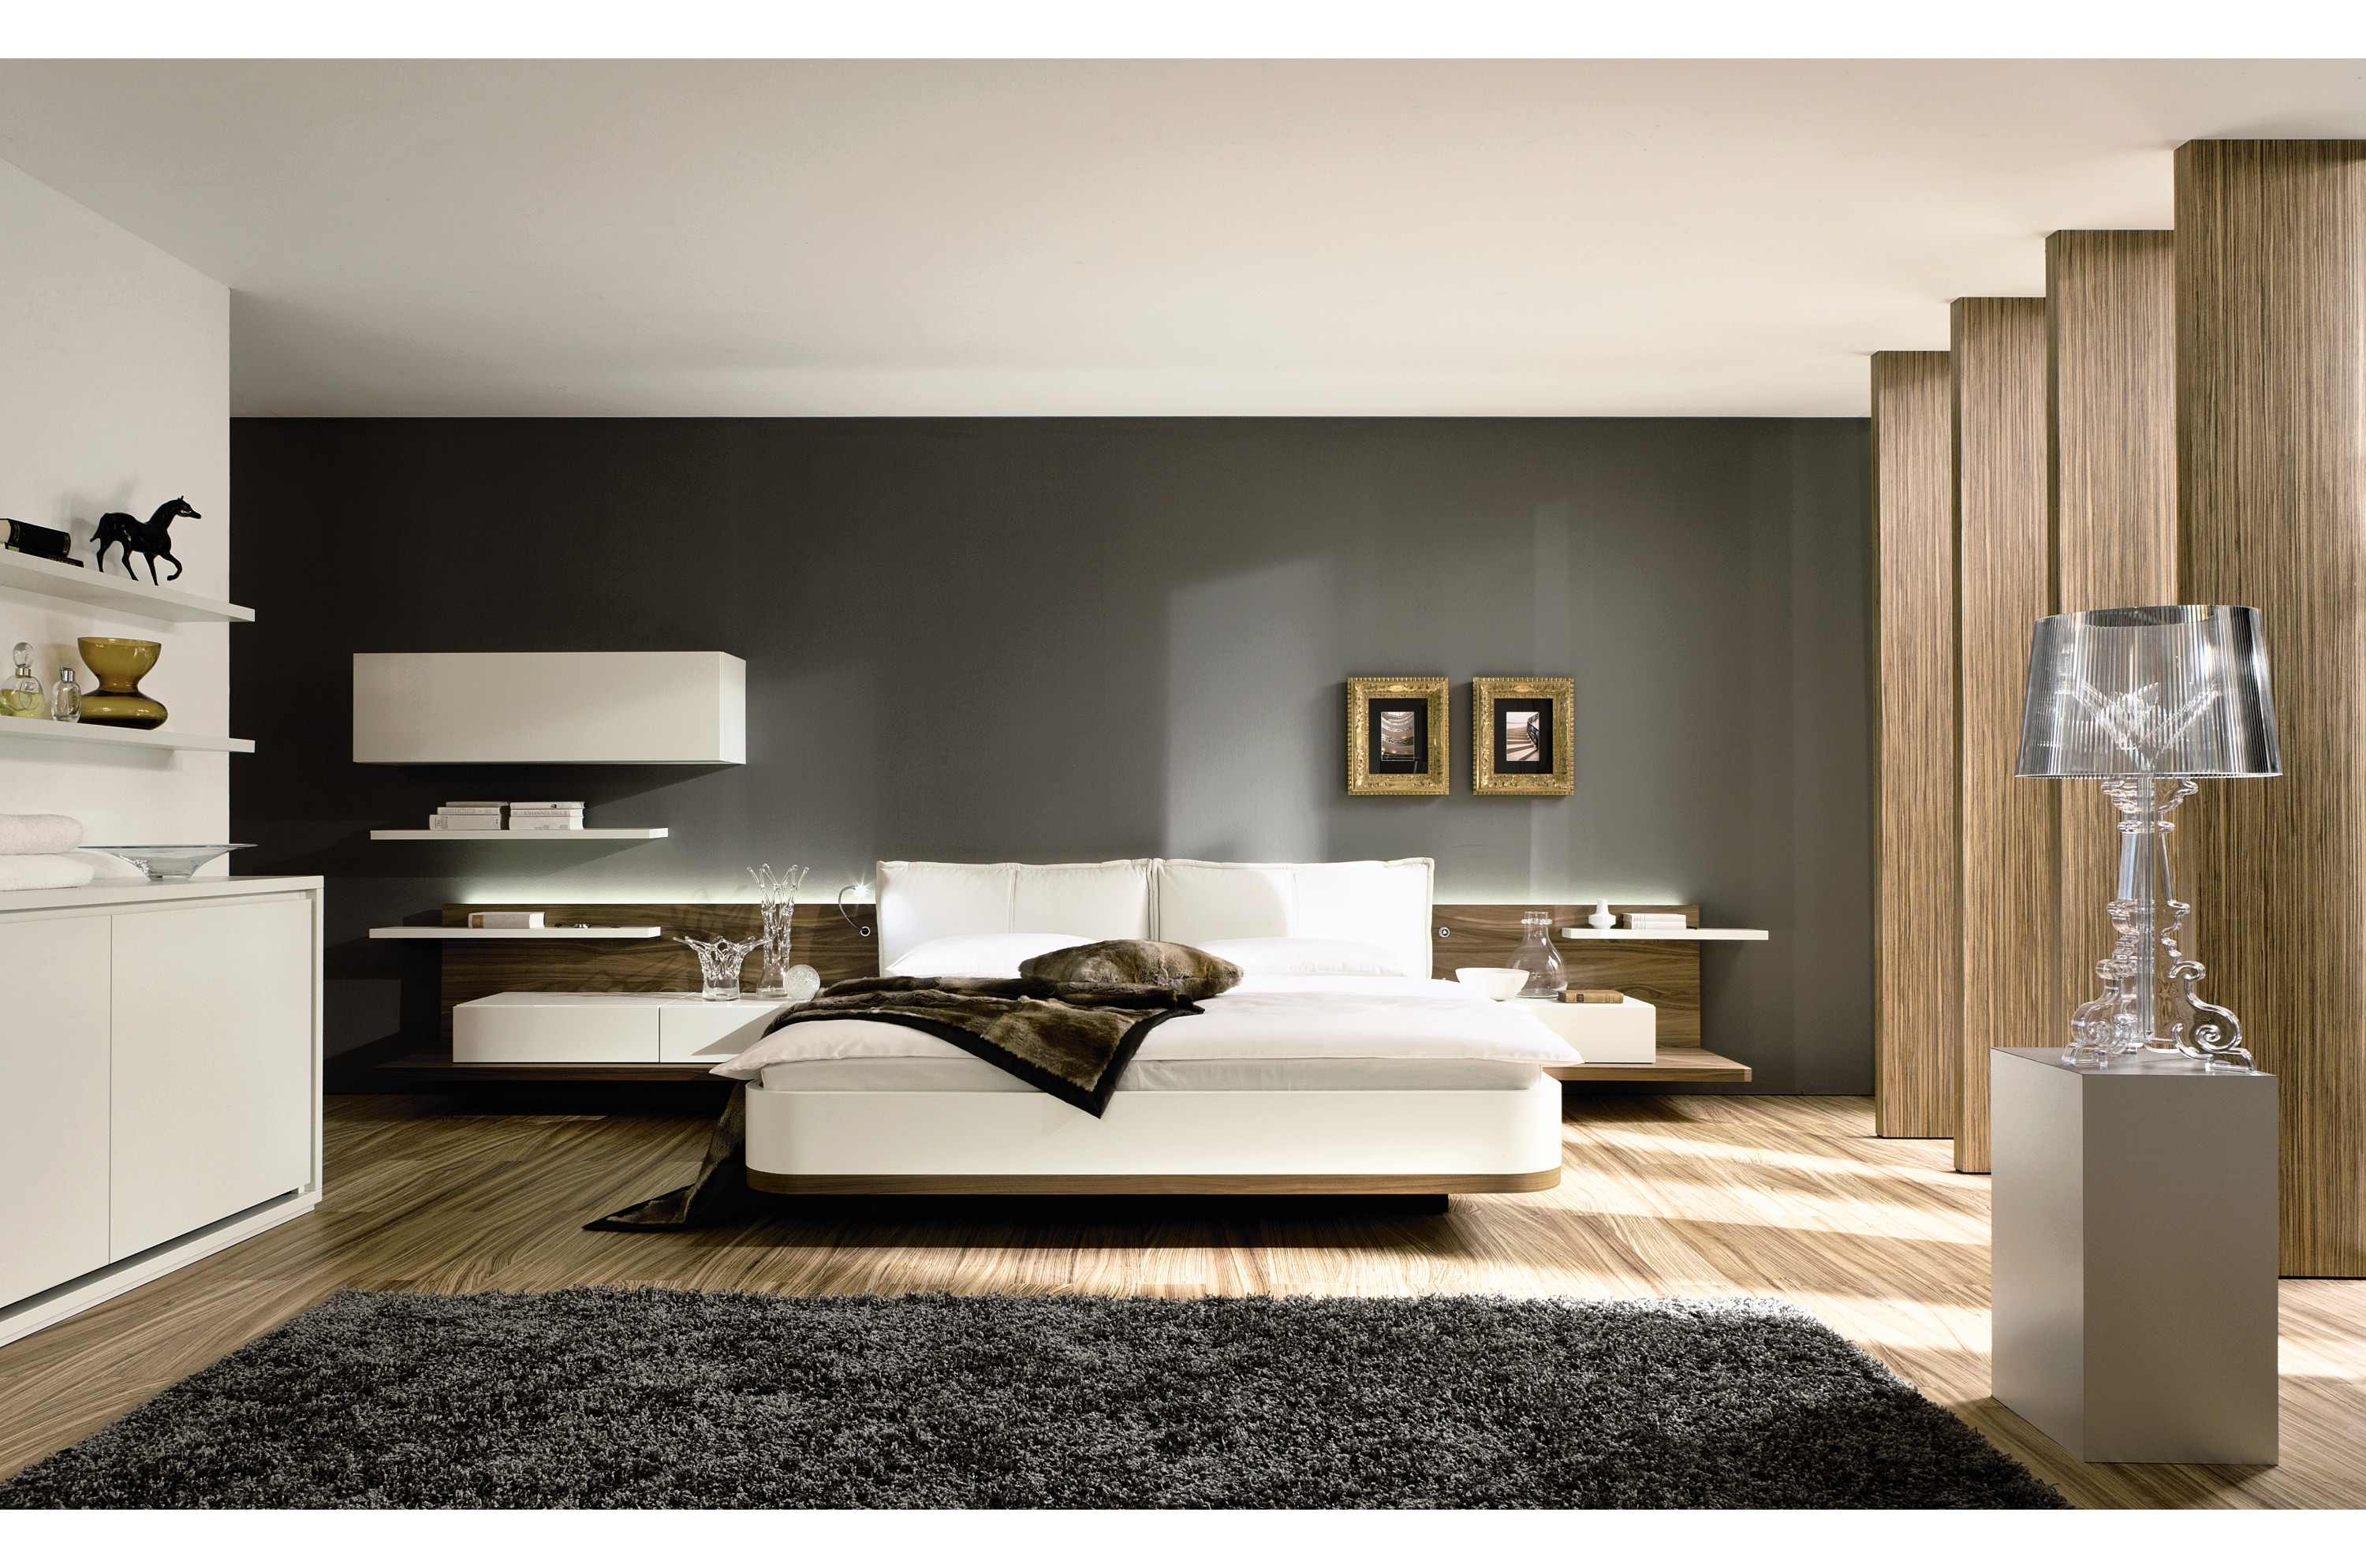 Modern bedroom innovation bedroom ideas interior design for New bedroom design images